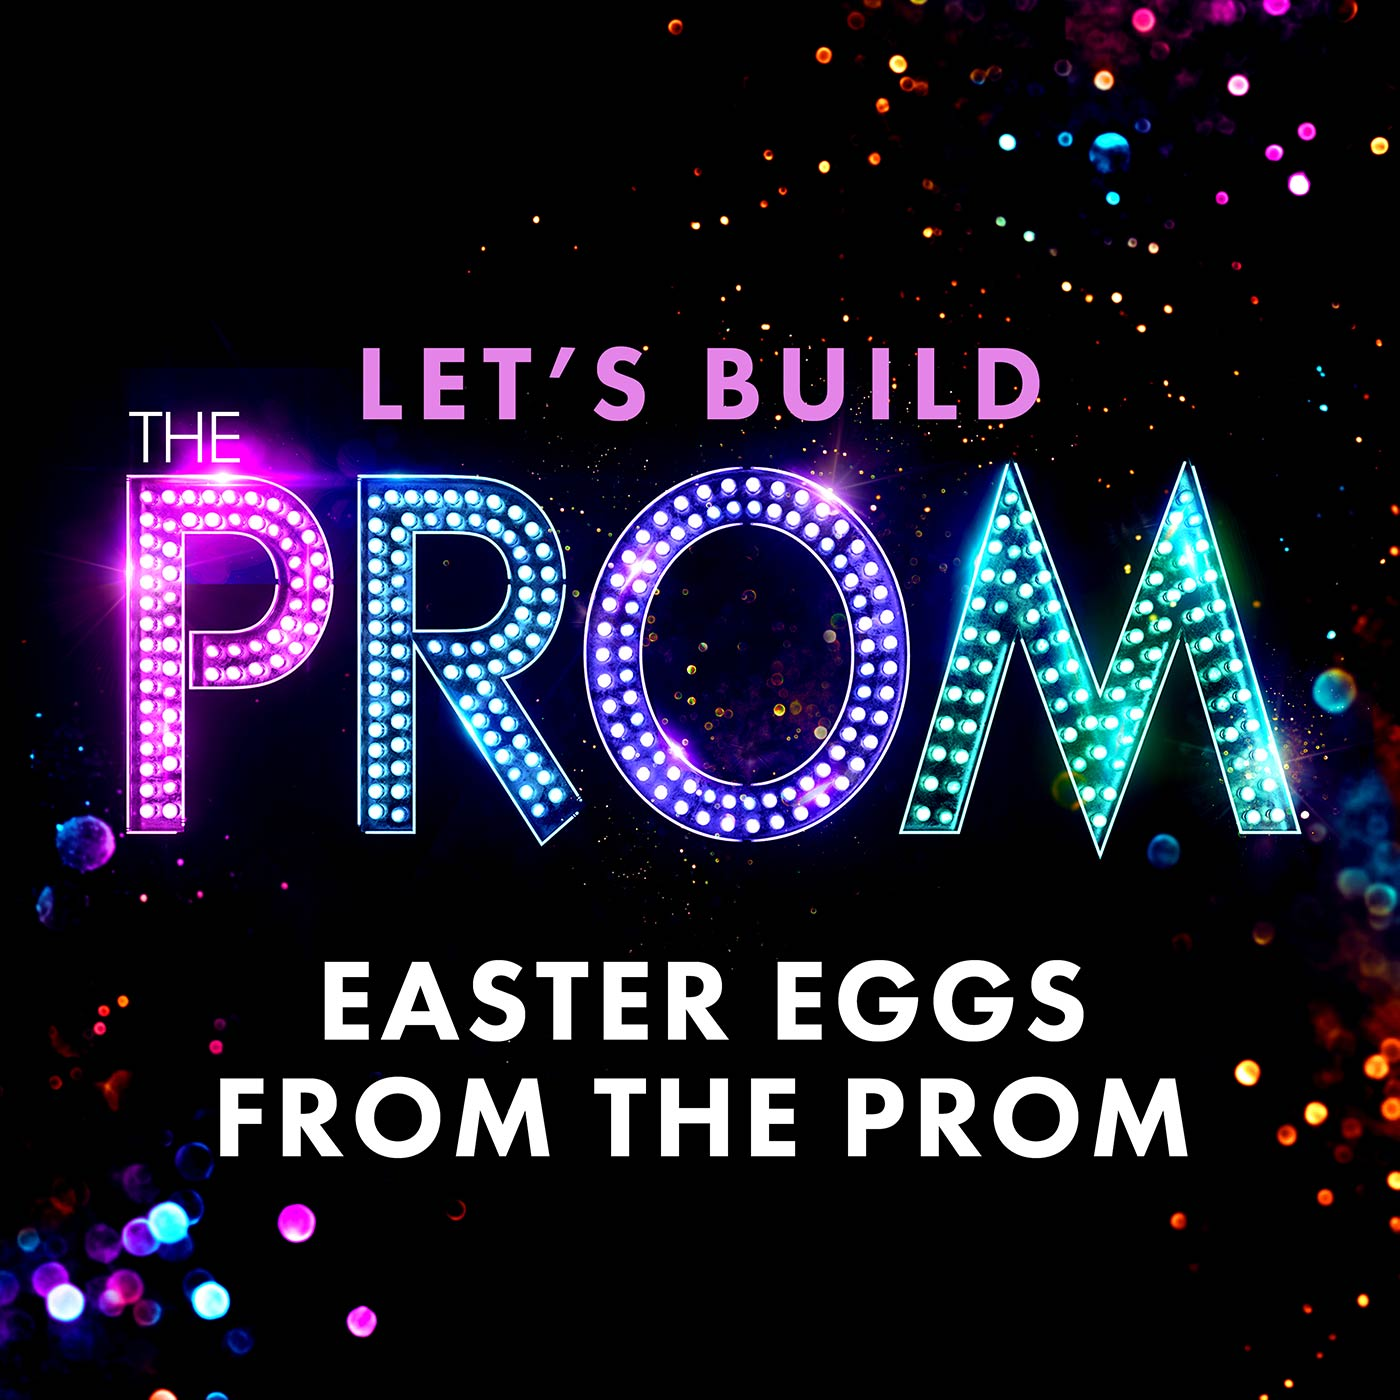 And All That Zazz - The Easter Eggs From The Prom